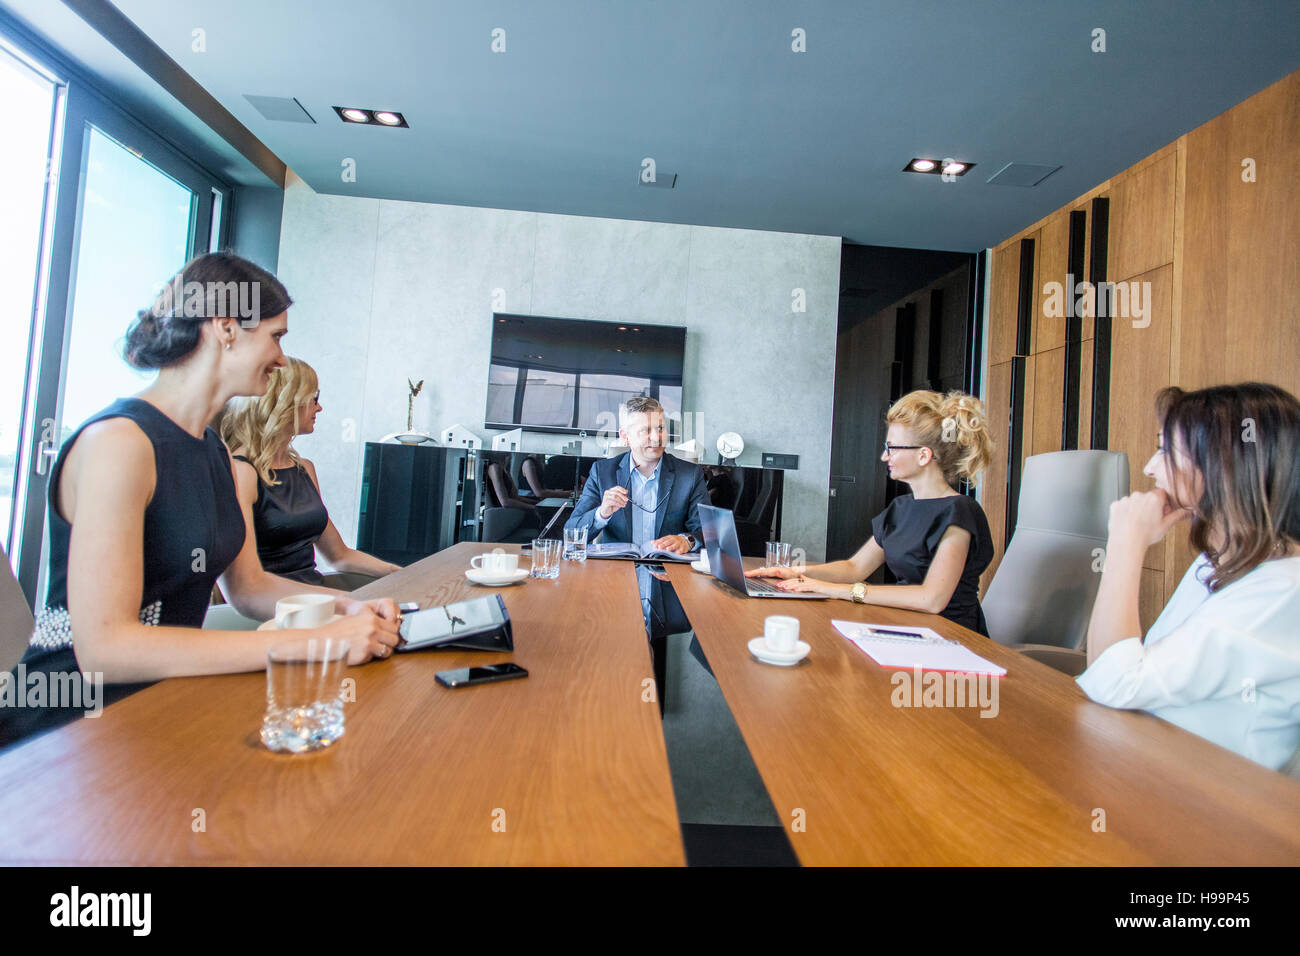 Business people having a meeting in conference room - Stock Image